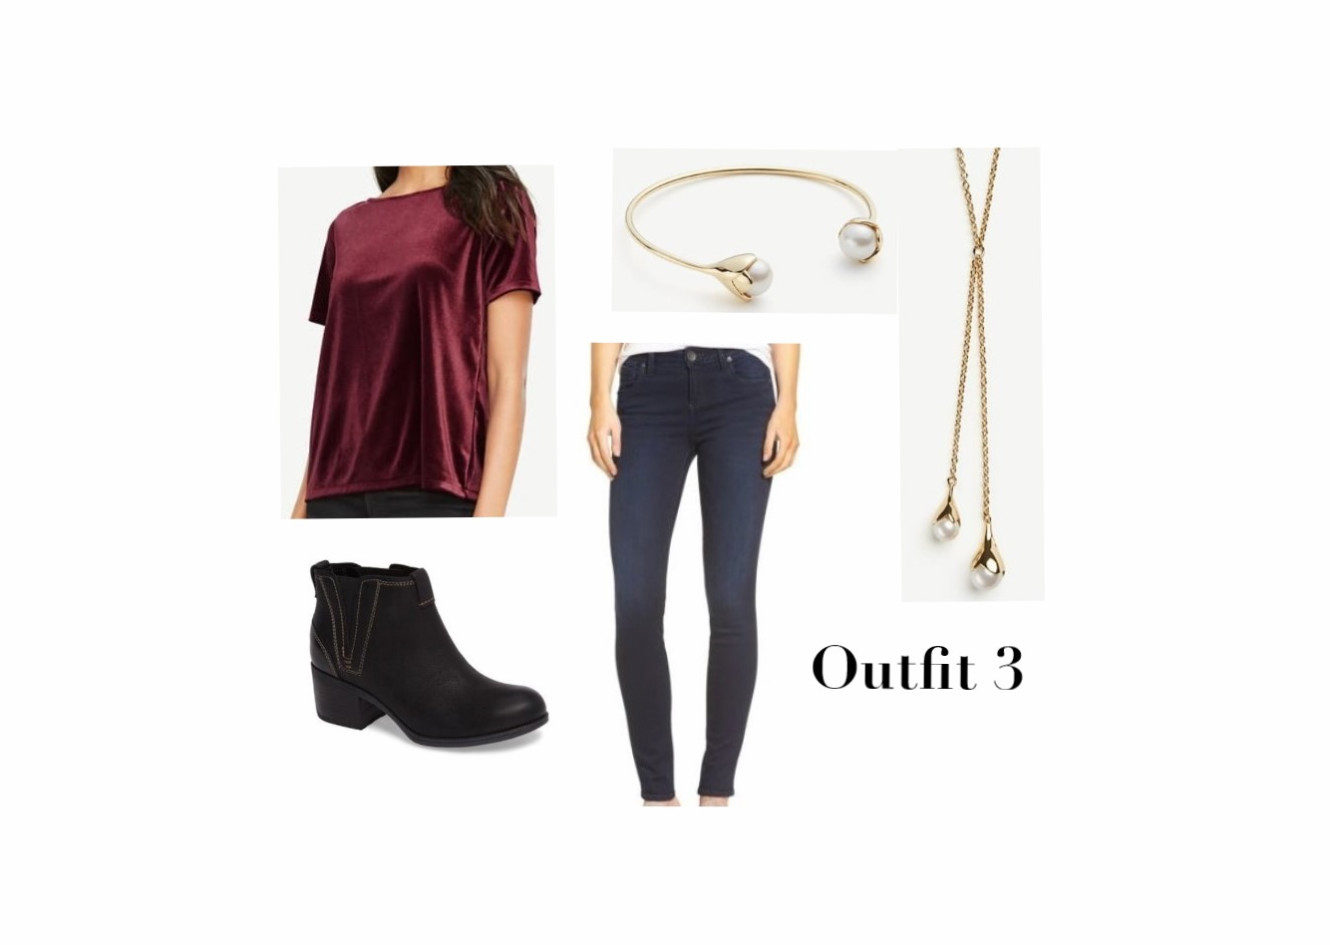 Velvet Top, Jeans, Boots, And Jewelry